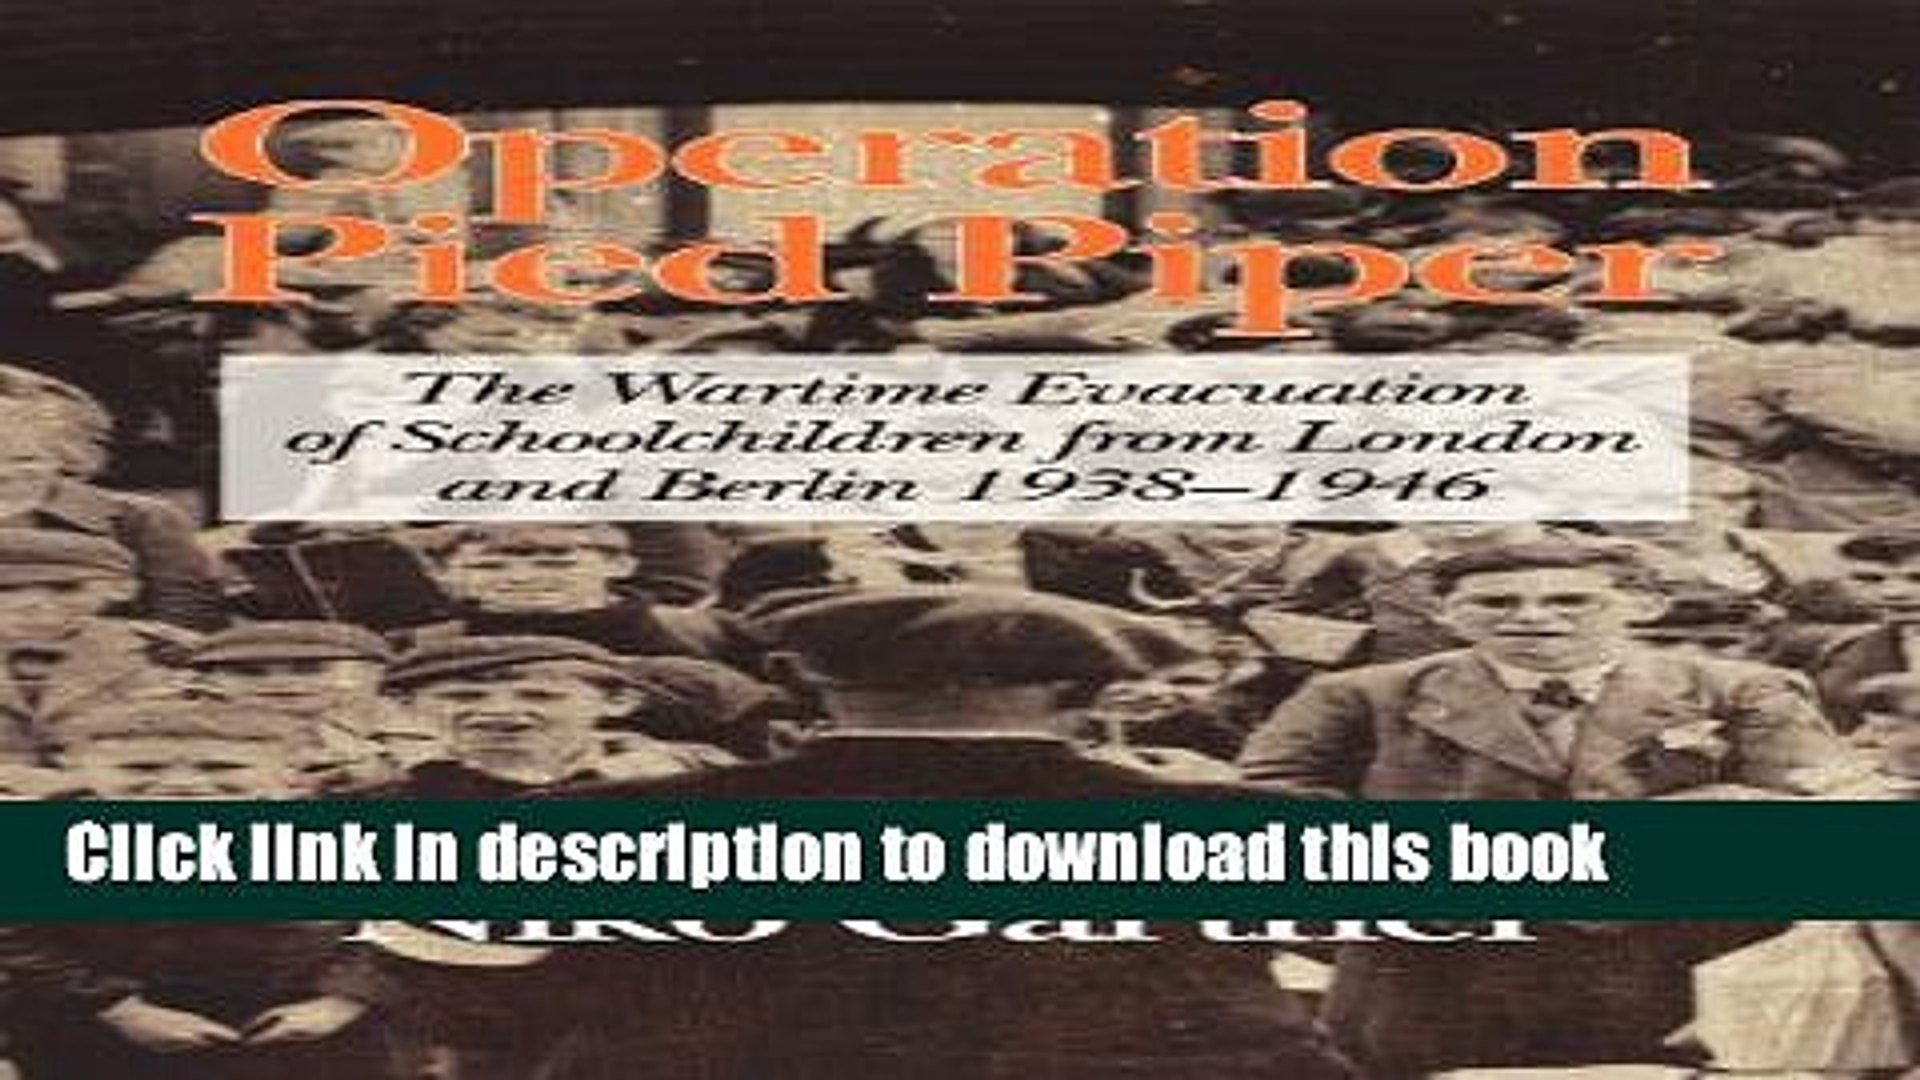 The Wartime Evacuation of Schoolchildren from London and Berlin 1938-46 Operation Pied Piper